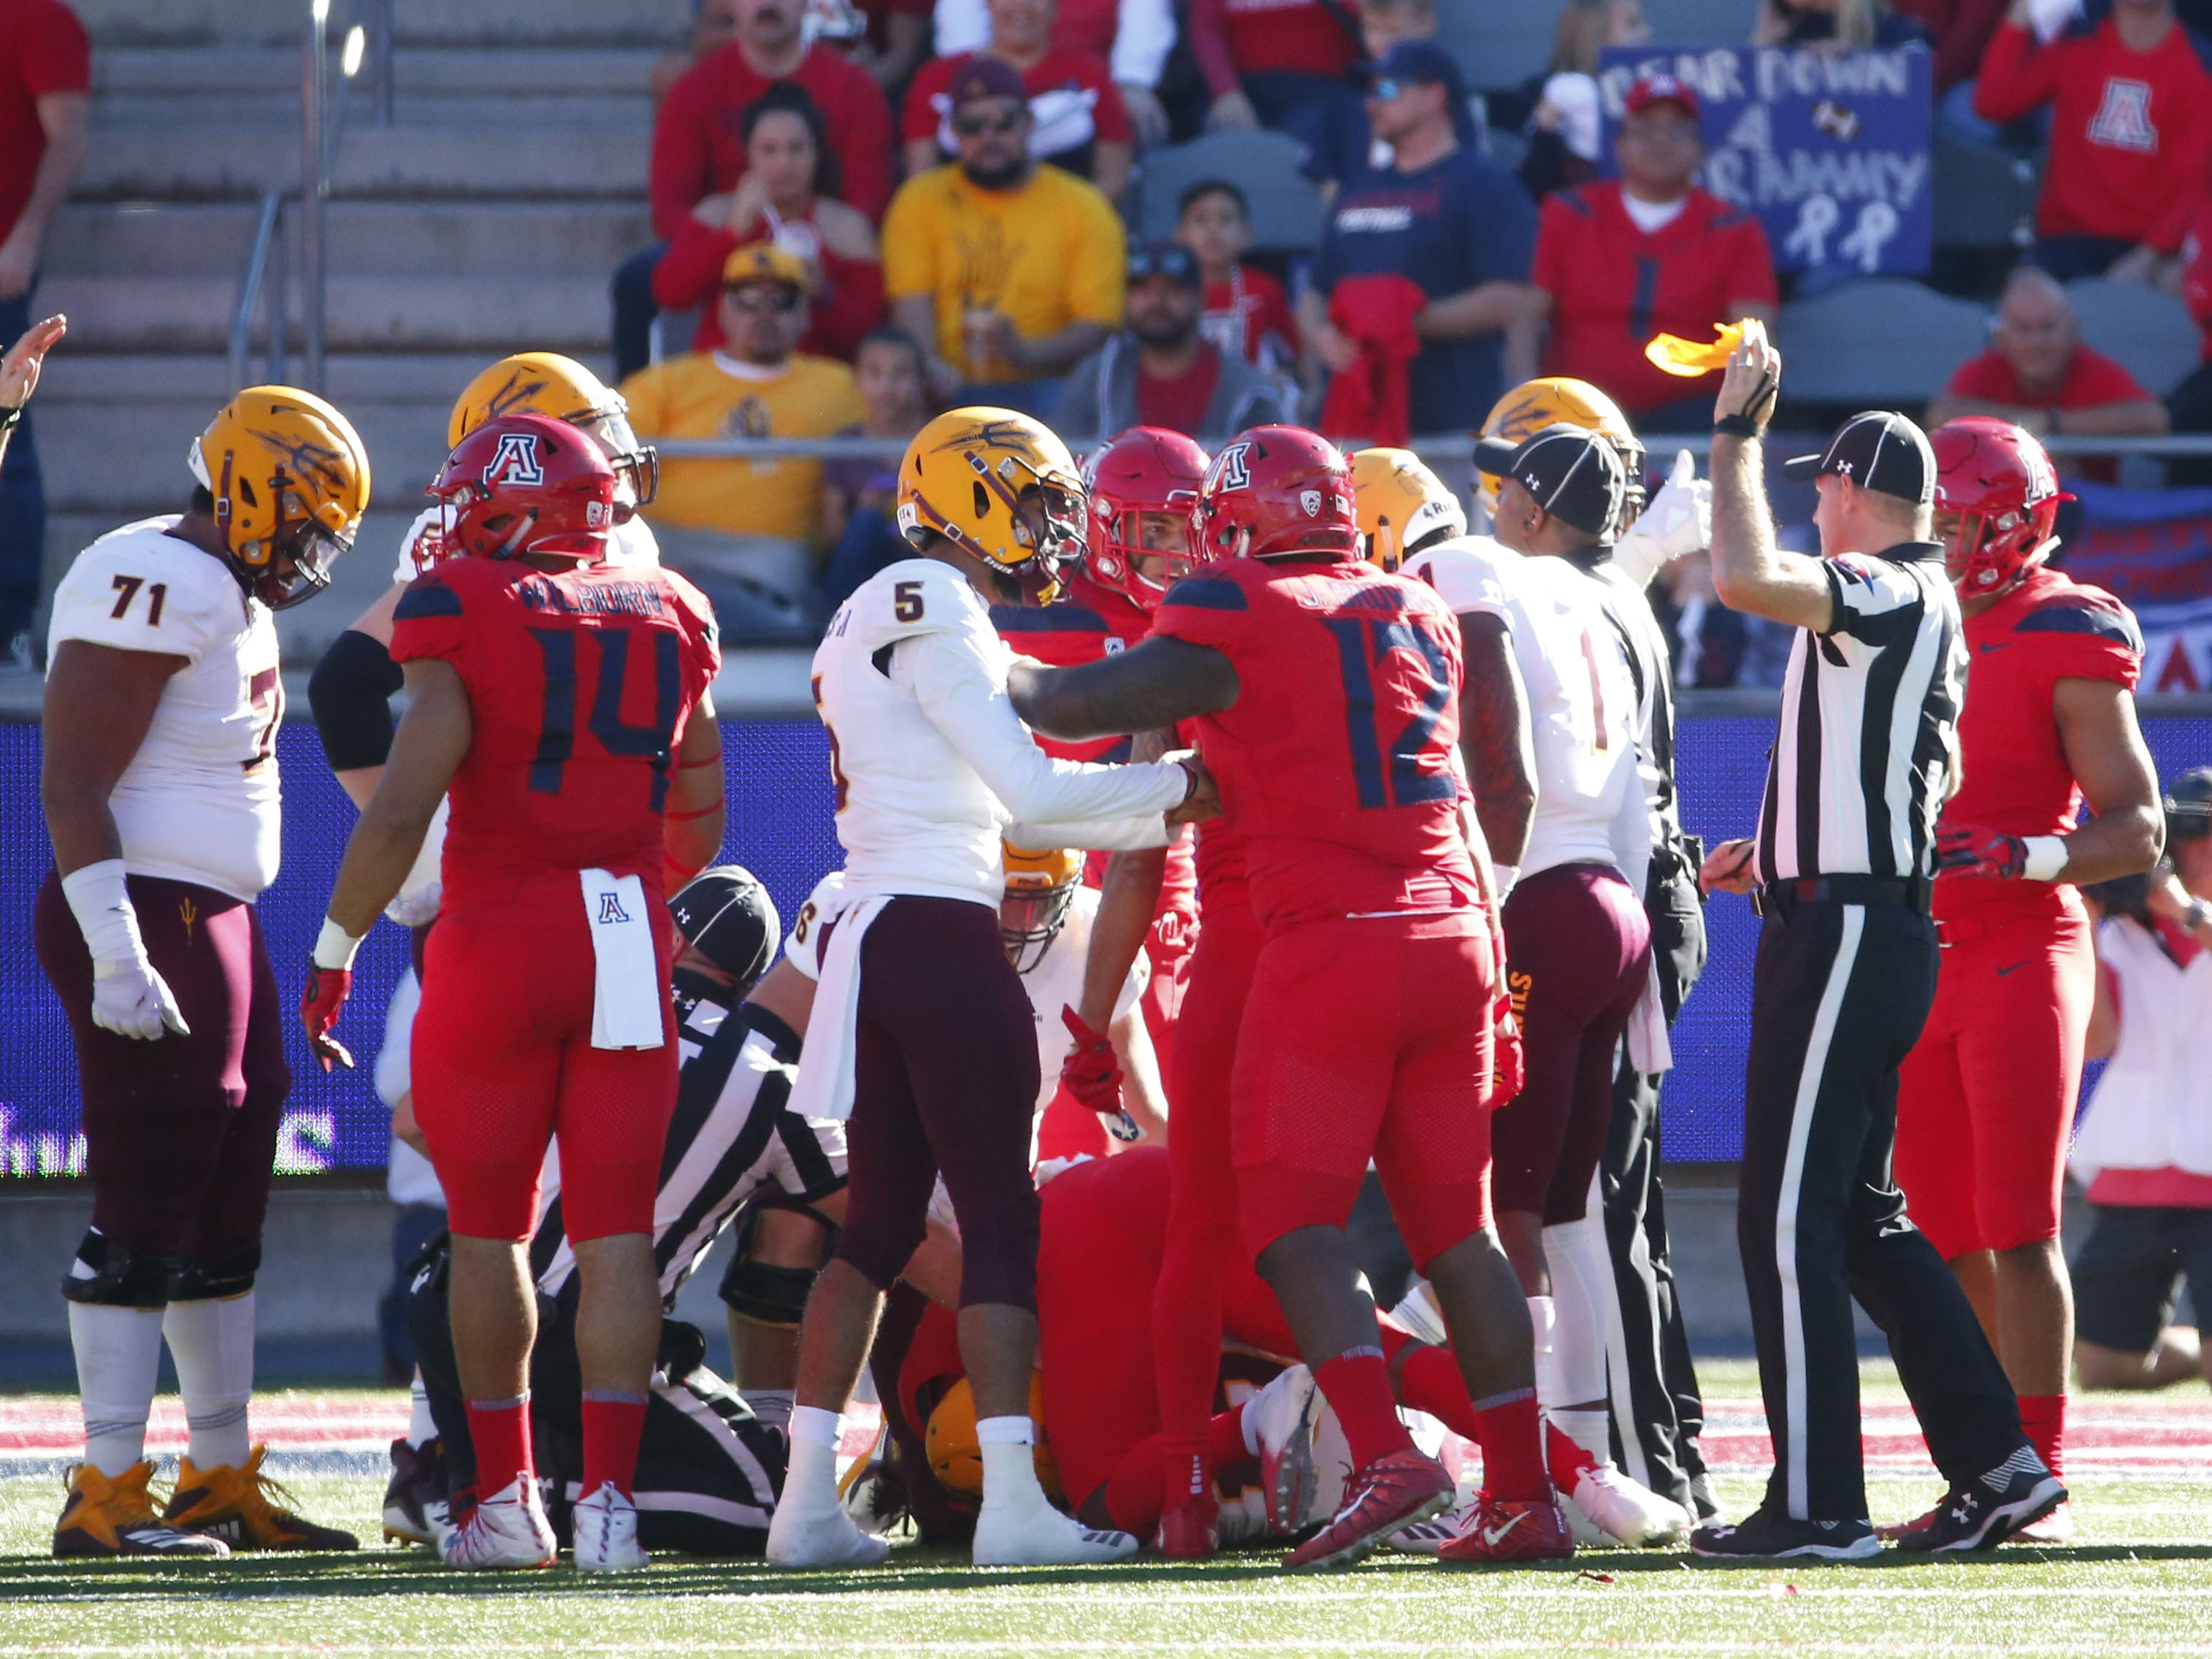 After the Arizona State Sun Devils fumble bounced around and a flag the ball was ruled recovered by ASU during the Territorial Cup football game against the Arizona Wildcats at Arizona Stadium in Tucson on November 24.